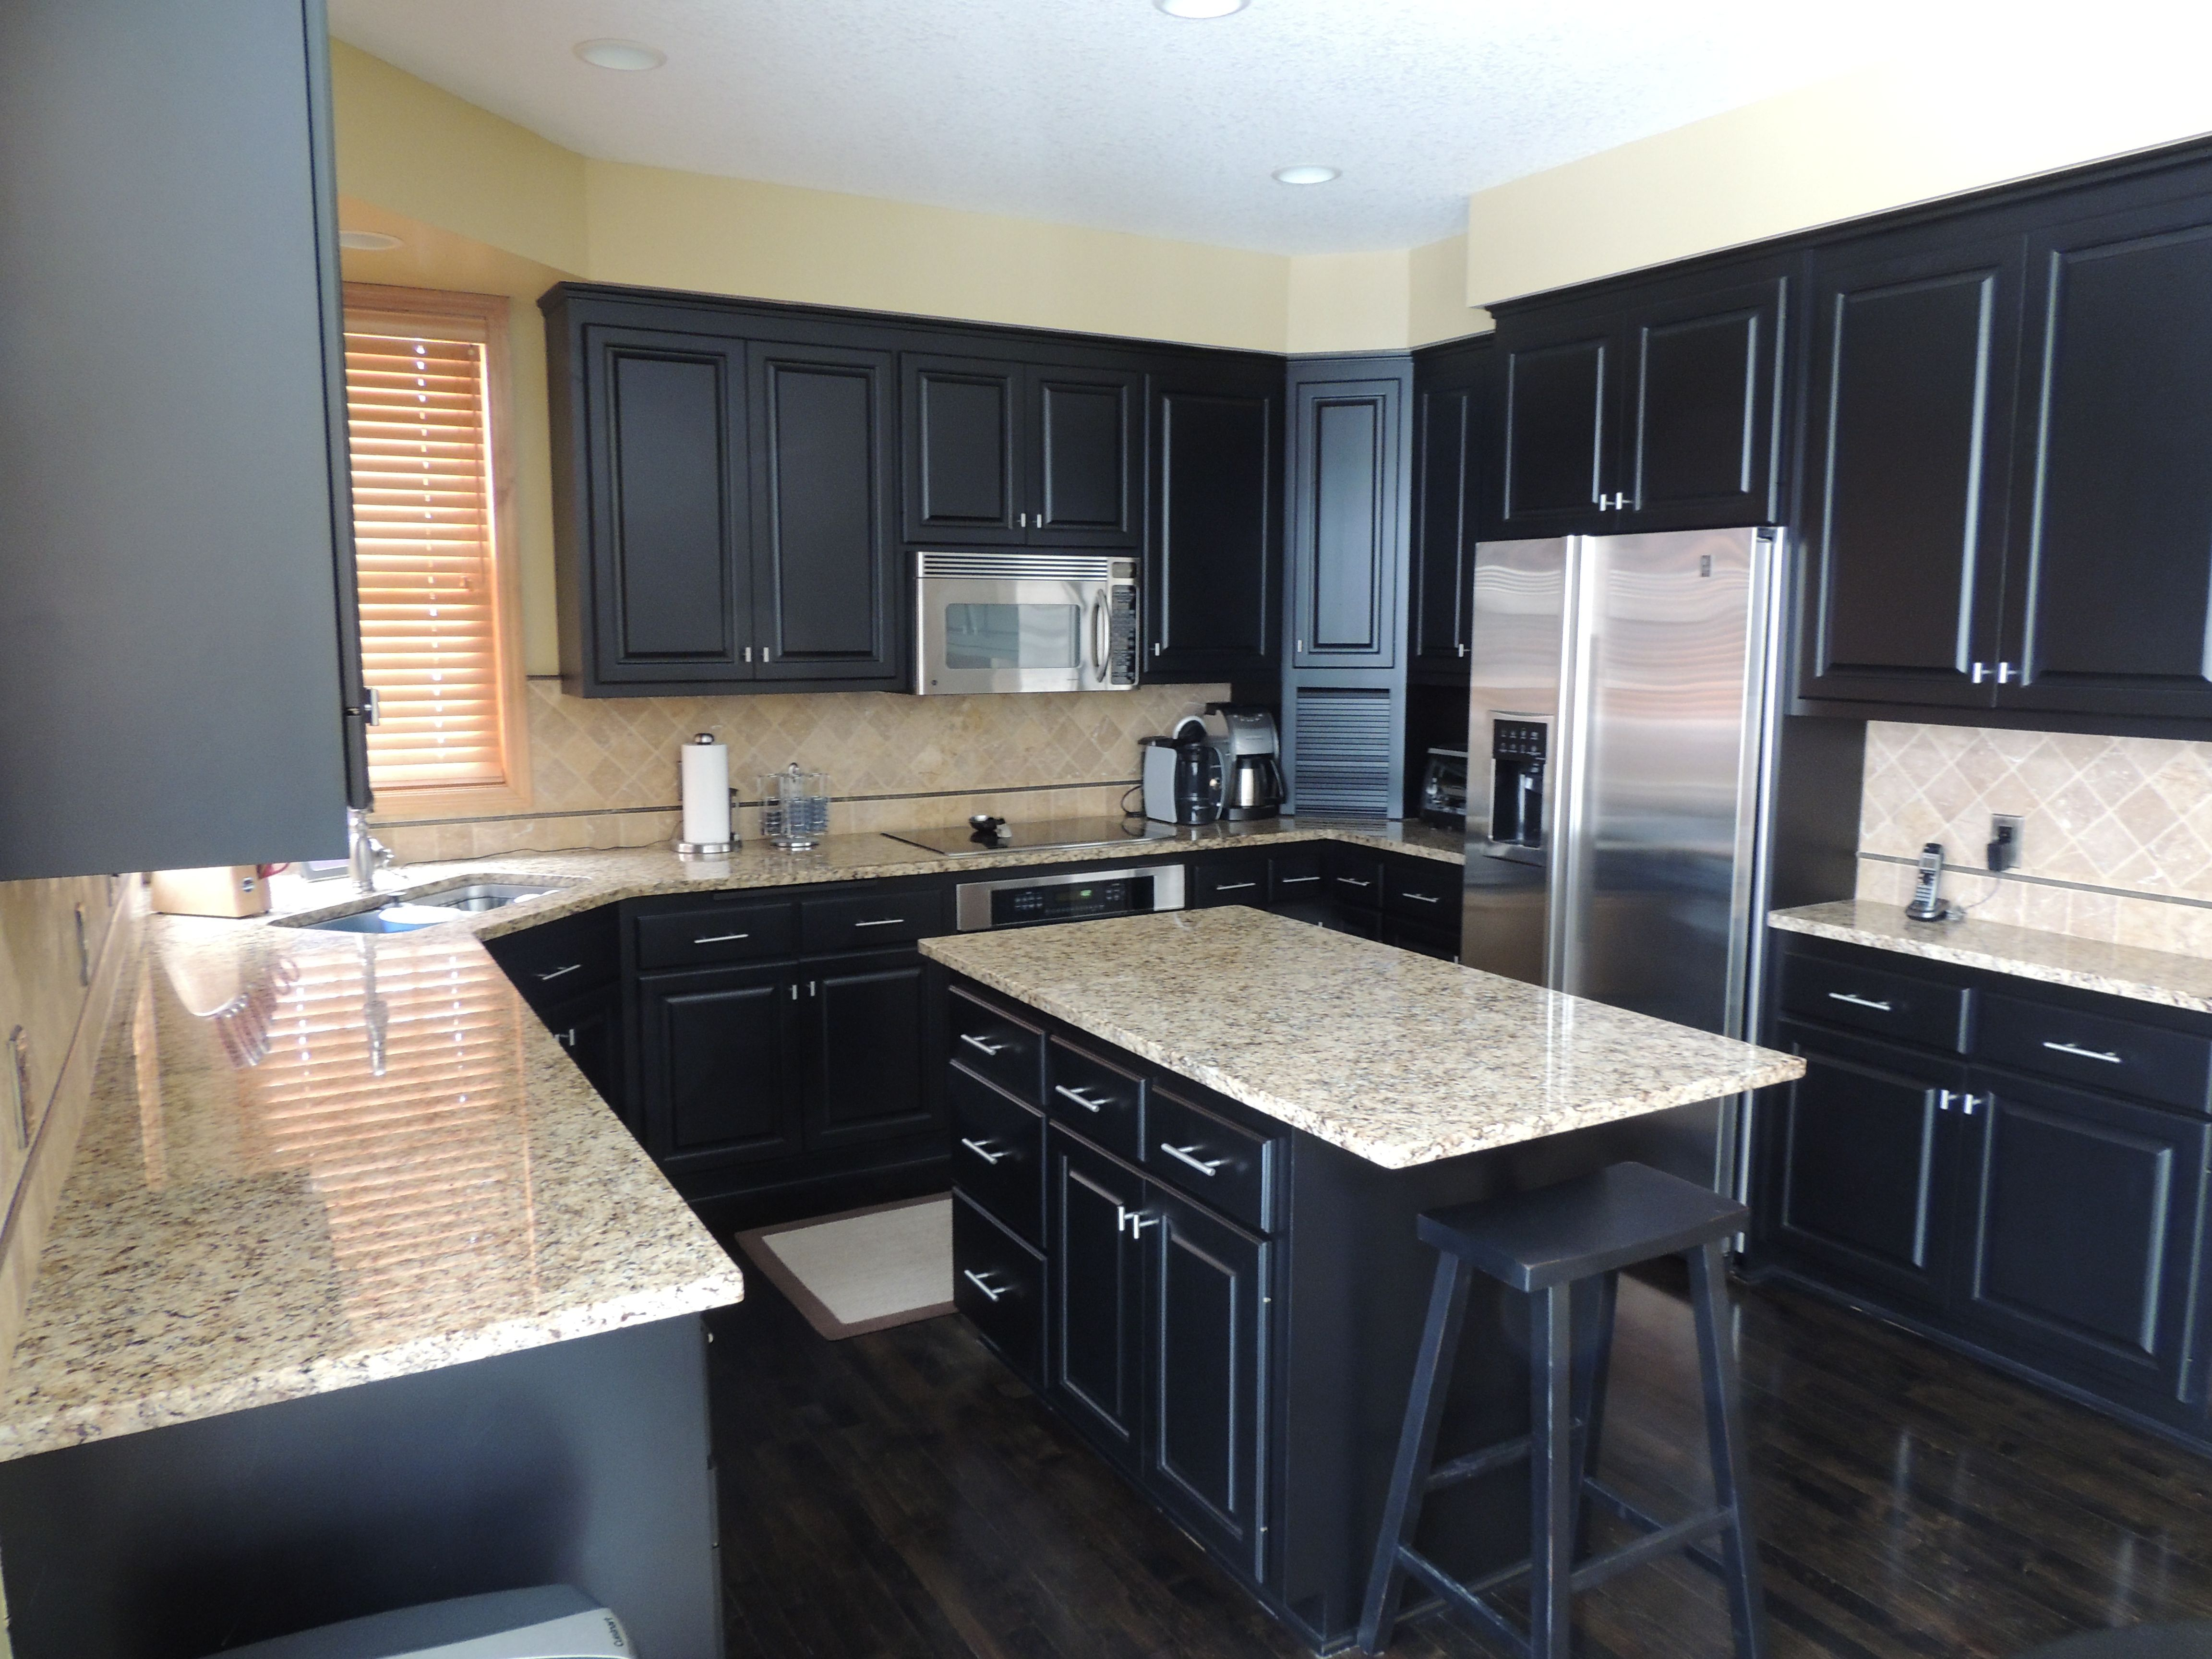 Contemporary Black Kitchen Cabinets With White Marble Countertops Furniture Glorious Granite As Well Inside Design Decorating